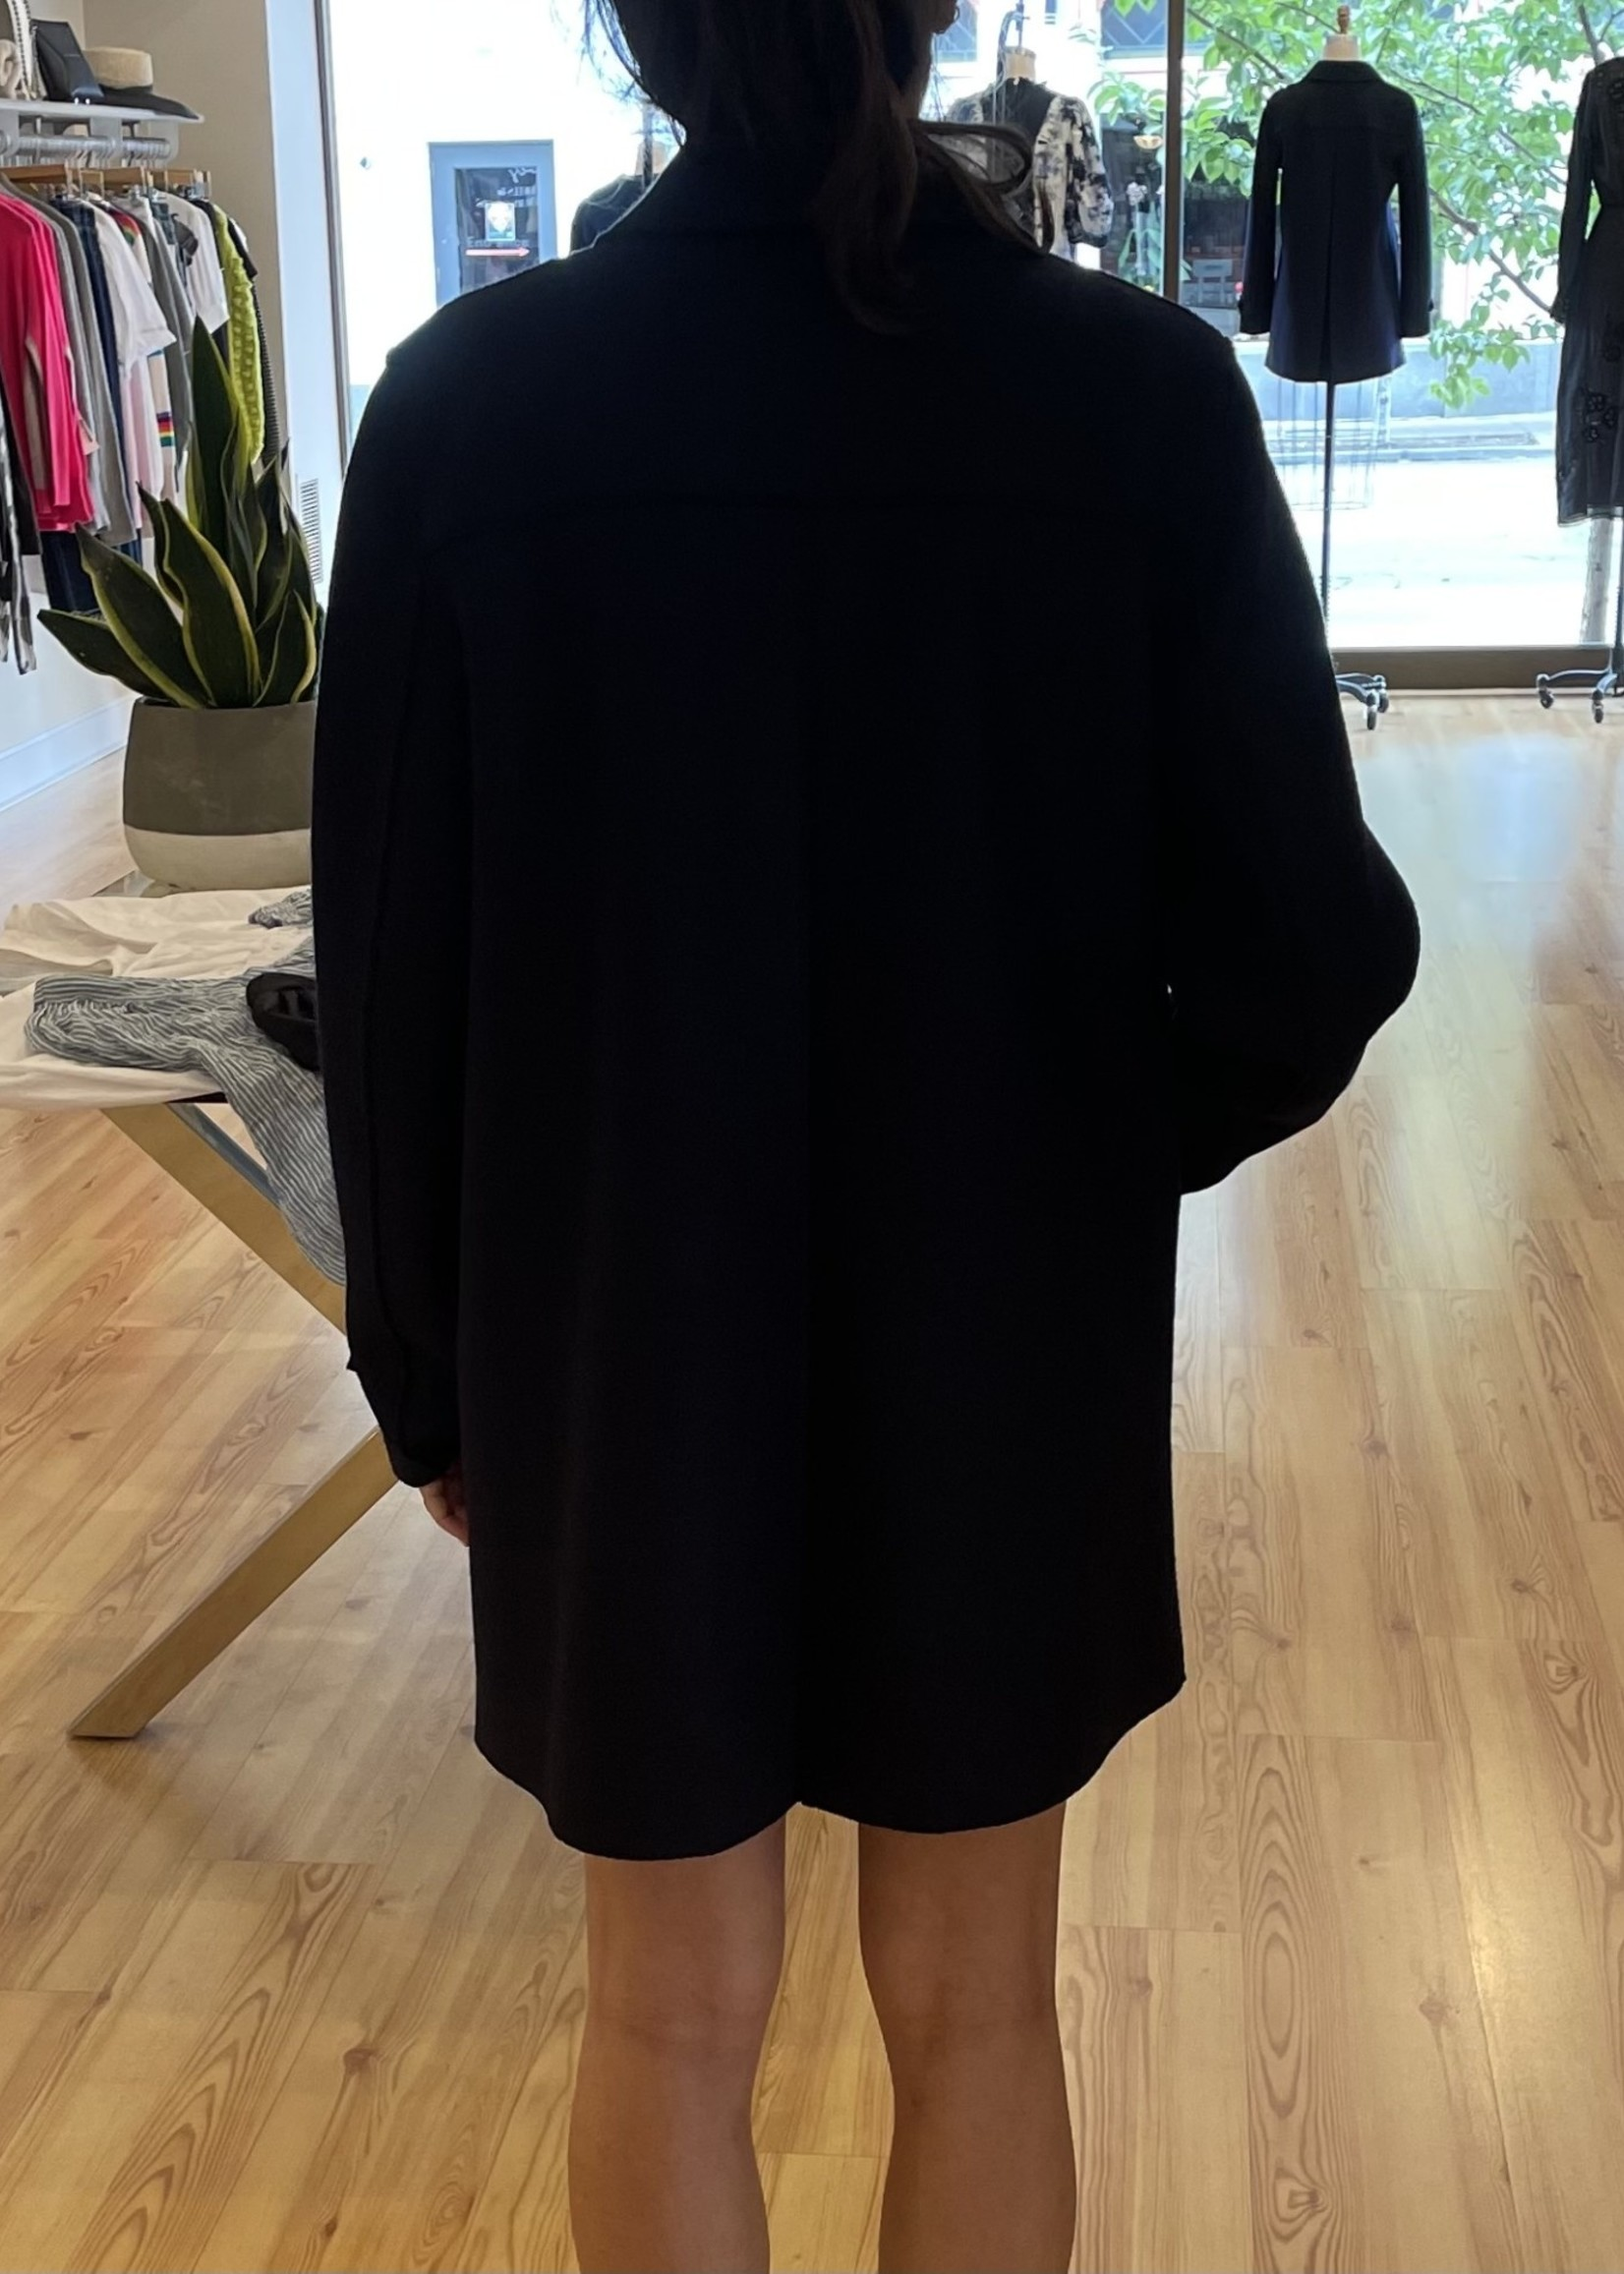 HARRIS AND WHARF LODEN PRESSED WOOL COAT 7/21